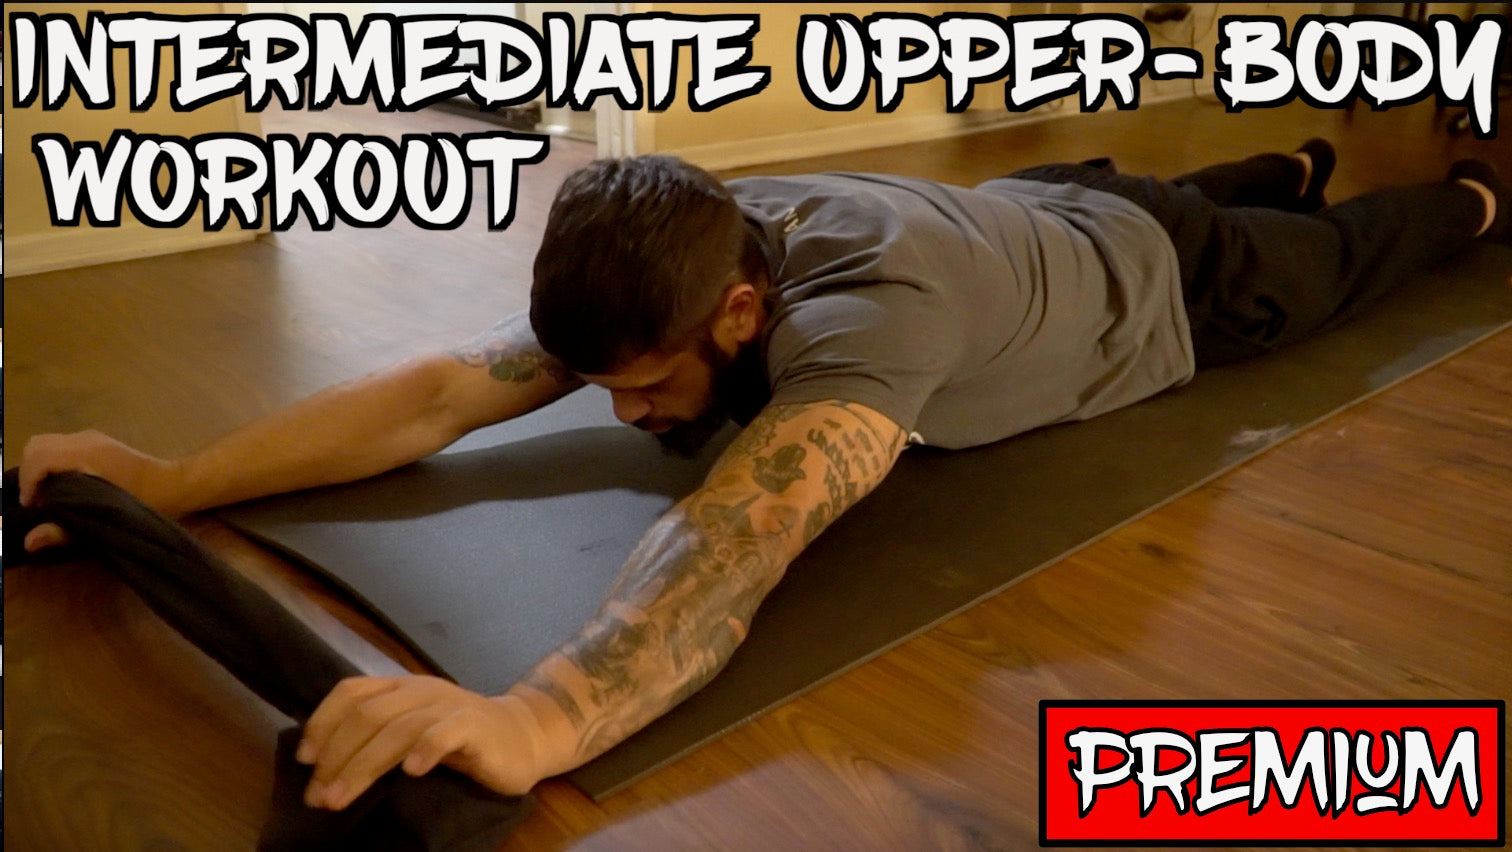 Intermediate Upper-Body Workout